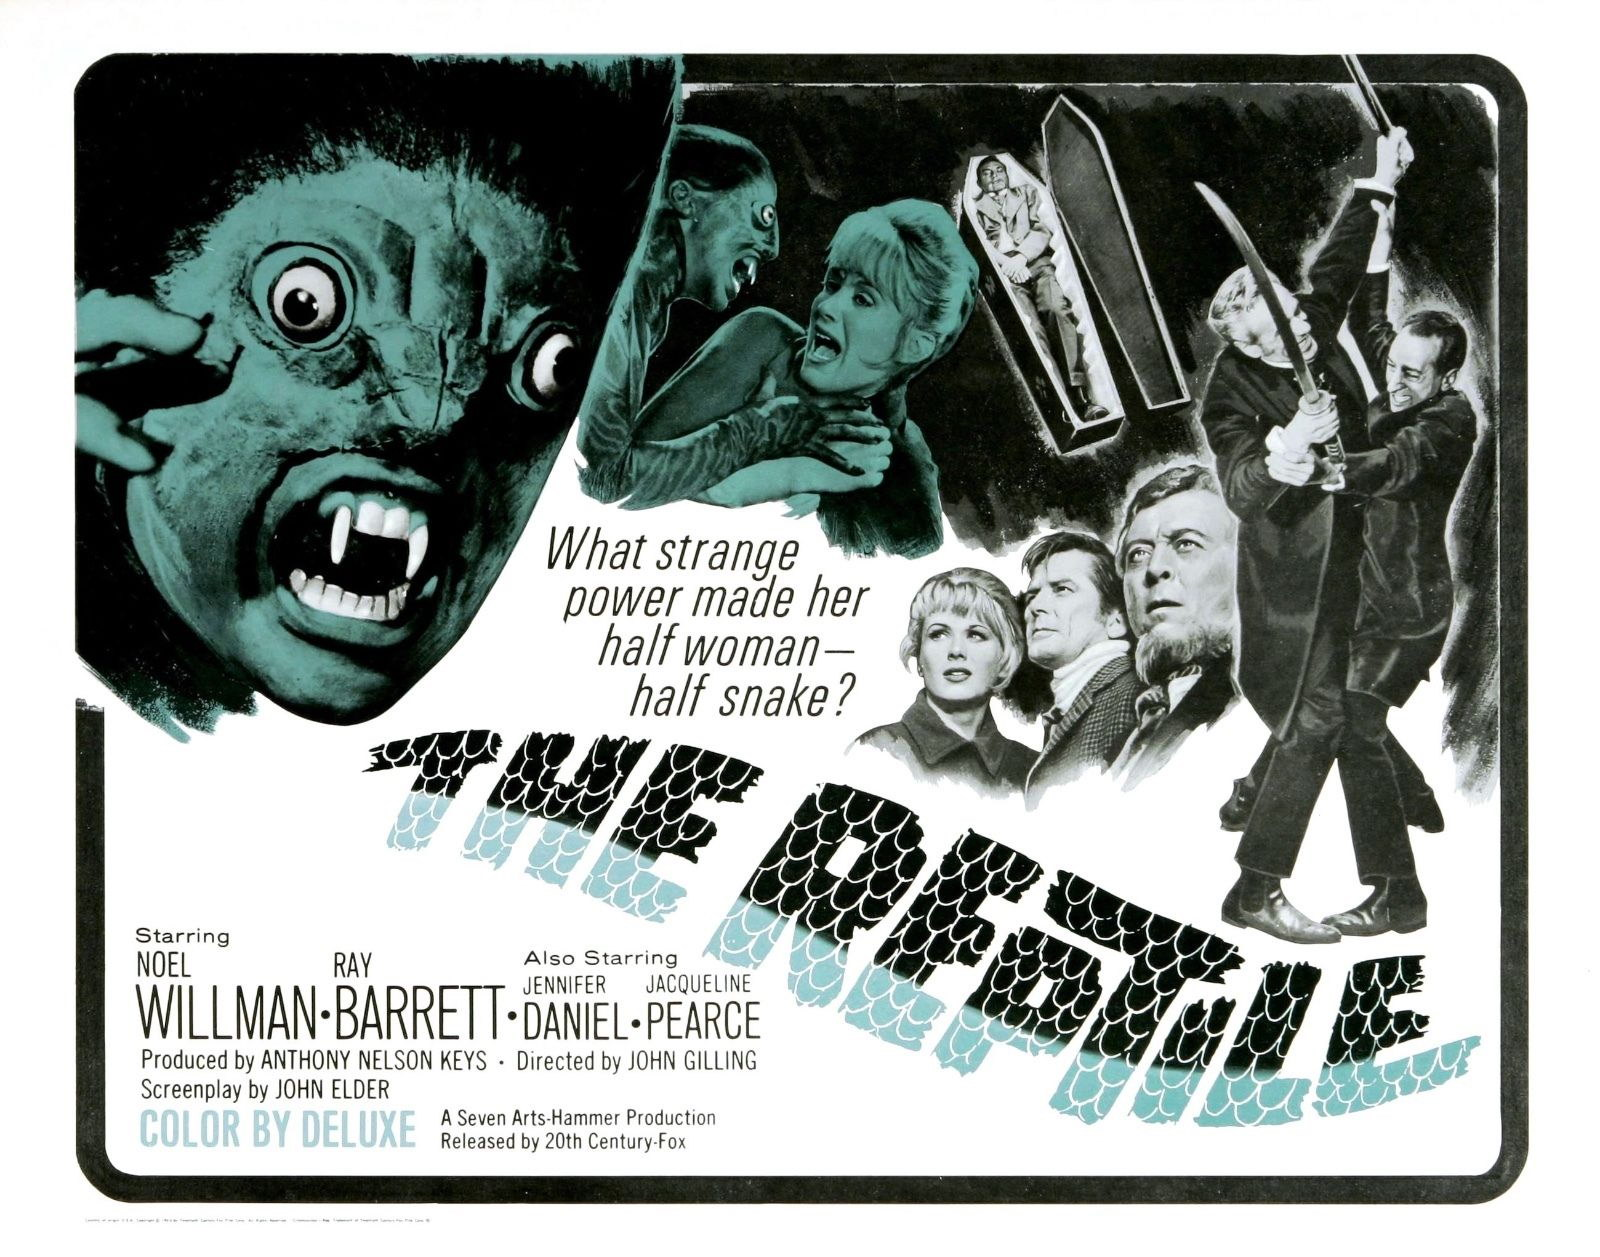 73679-The-Reptile-Movie-1966-Thriller-Cult-Wall-Print-Poster-Affiche